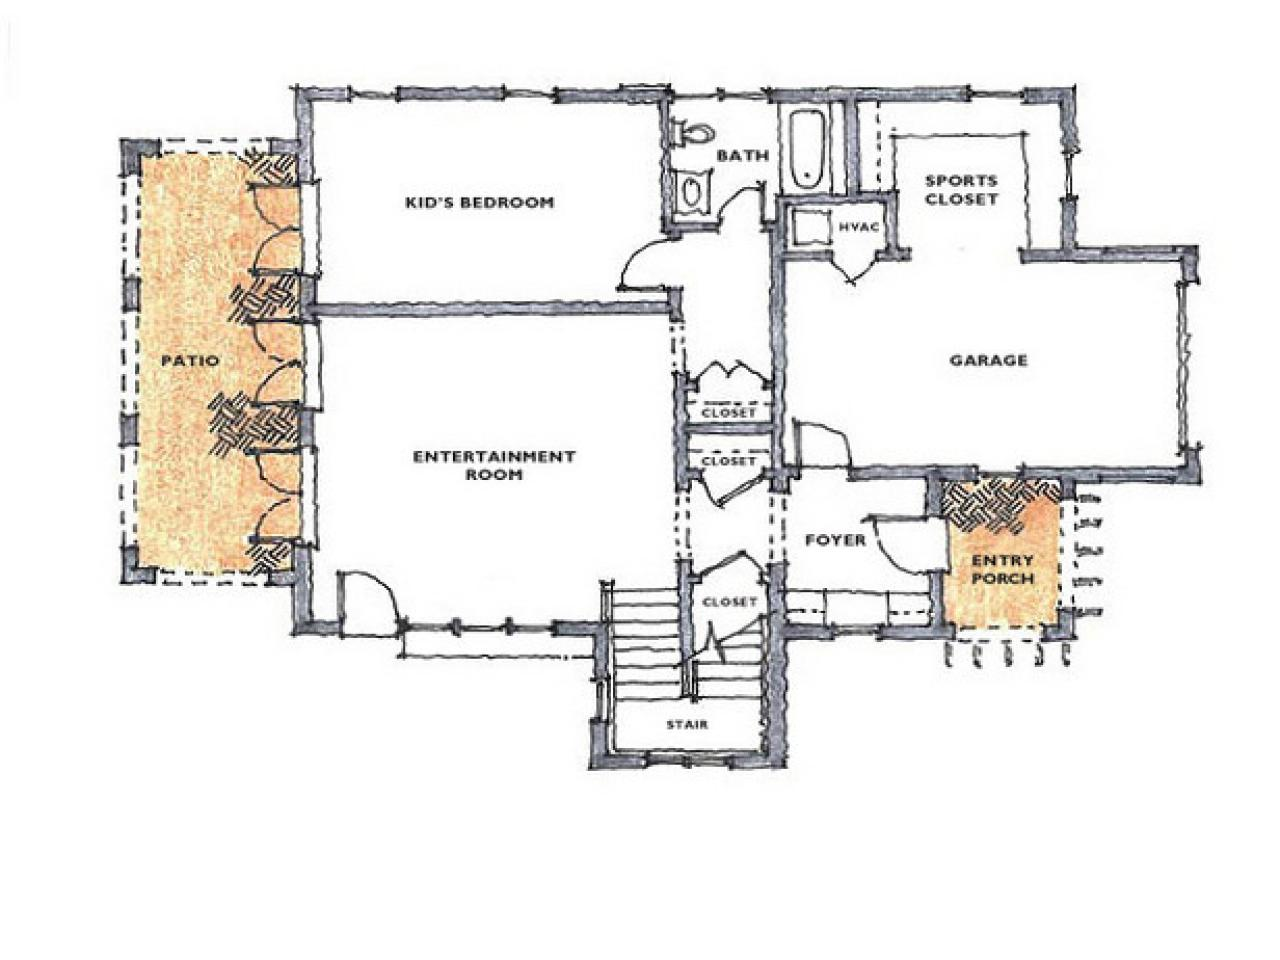 Floor plan for hgtv dream home 2008 hgtv dream home 2008 for Dream house blueprints